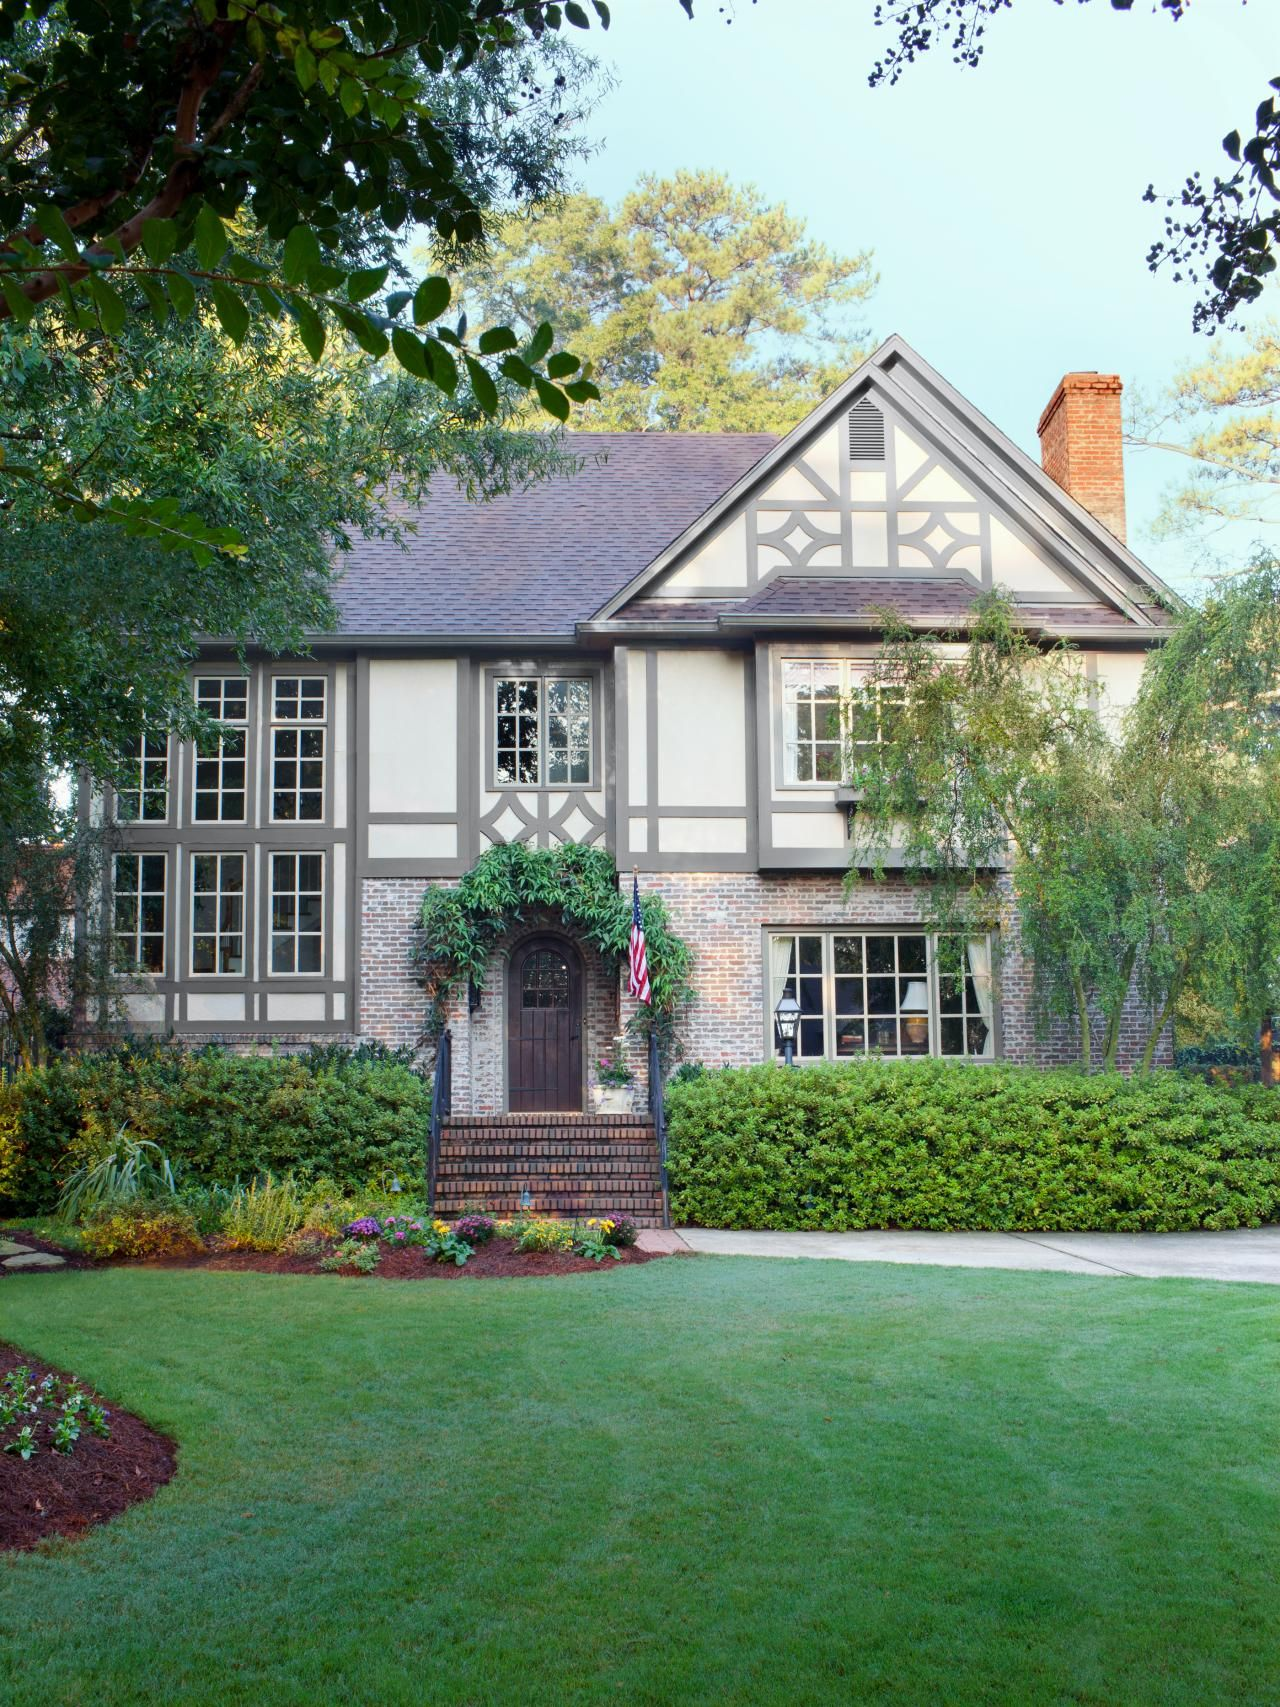 stealable curb appeal ideas from tudor revivals grey trim sag